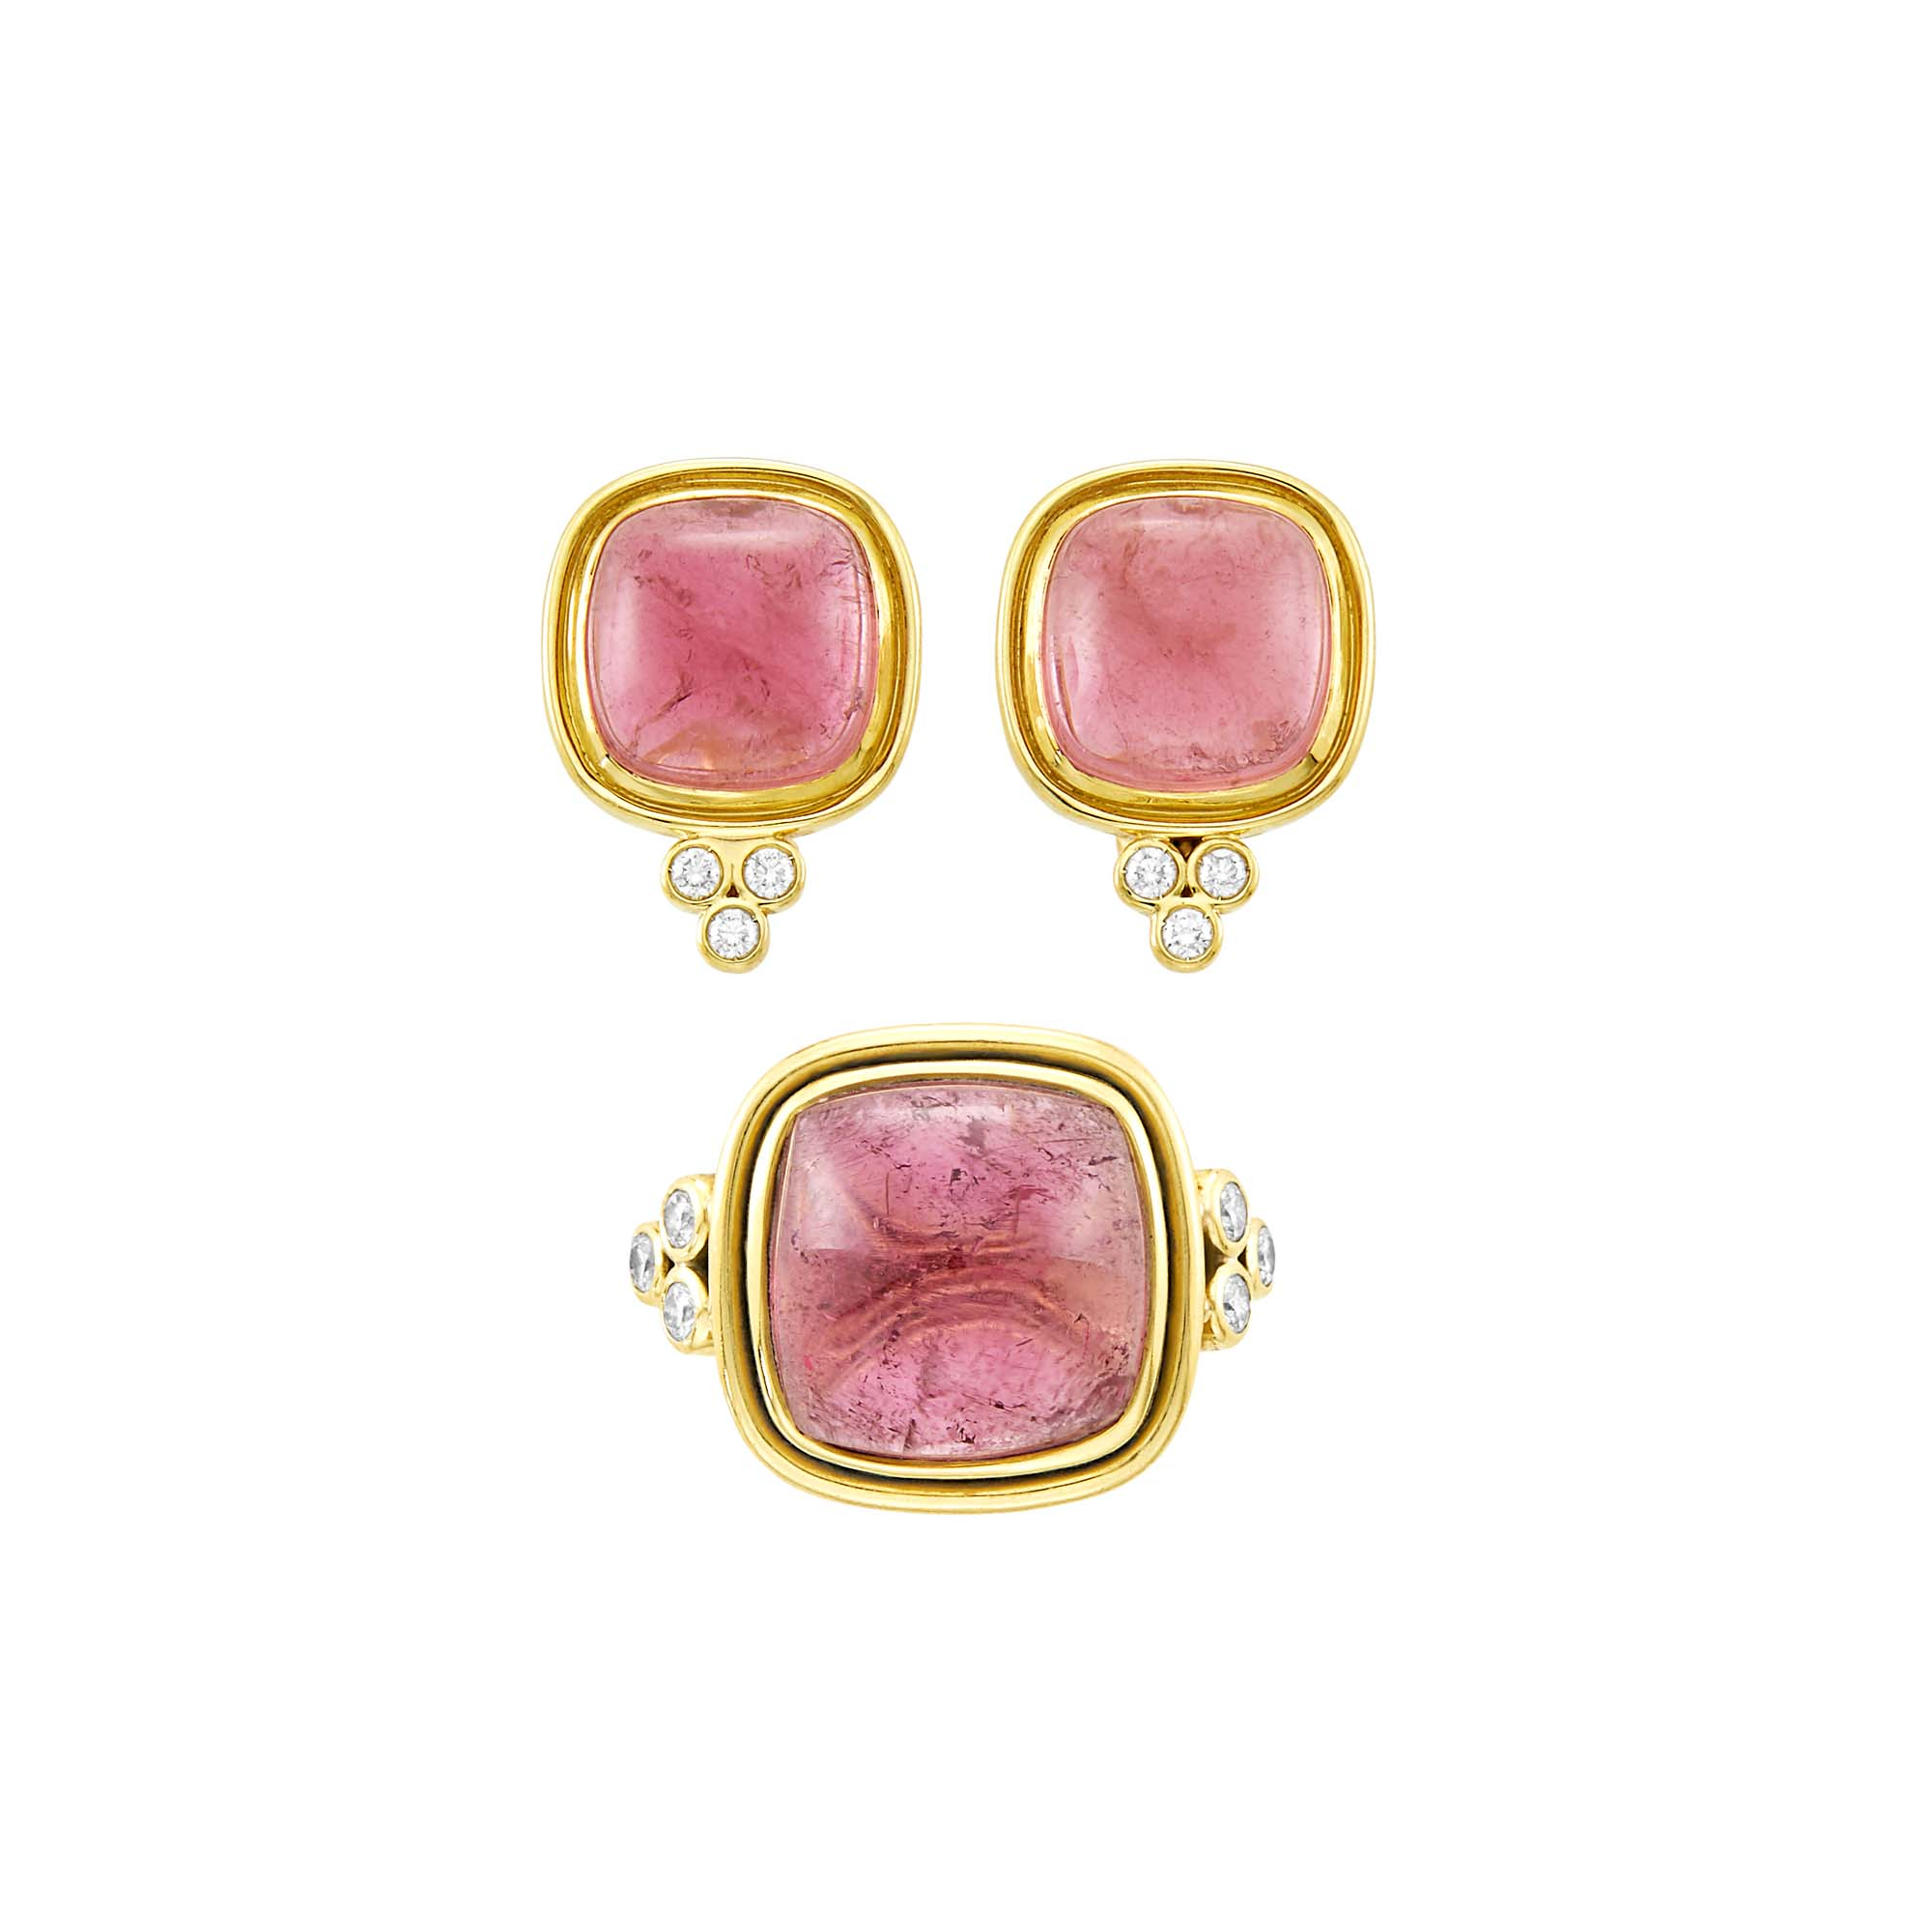 Lot image - Temple St. Clair Gold, Cabochon Pink Tourmaline and Diamond Ring and Pair of Earrings